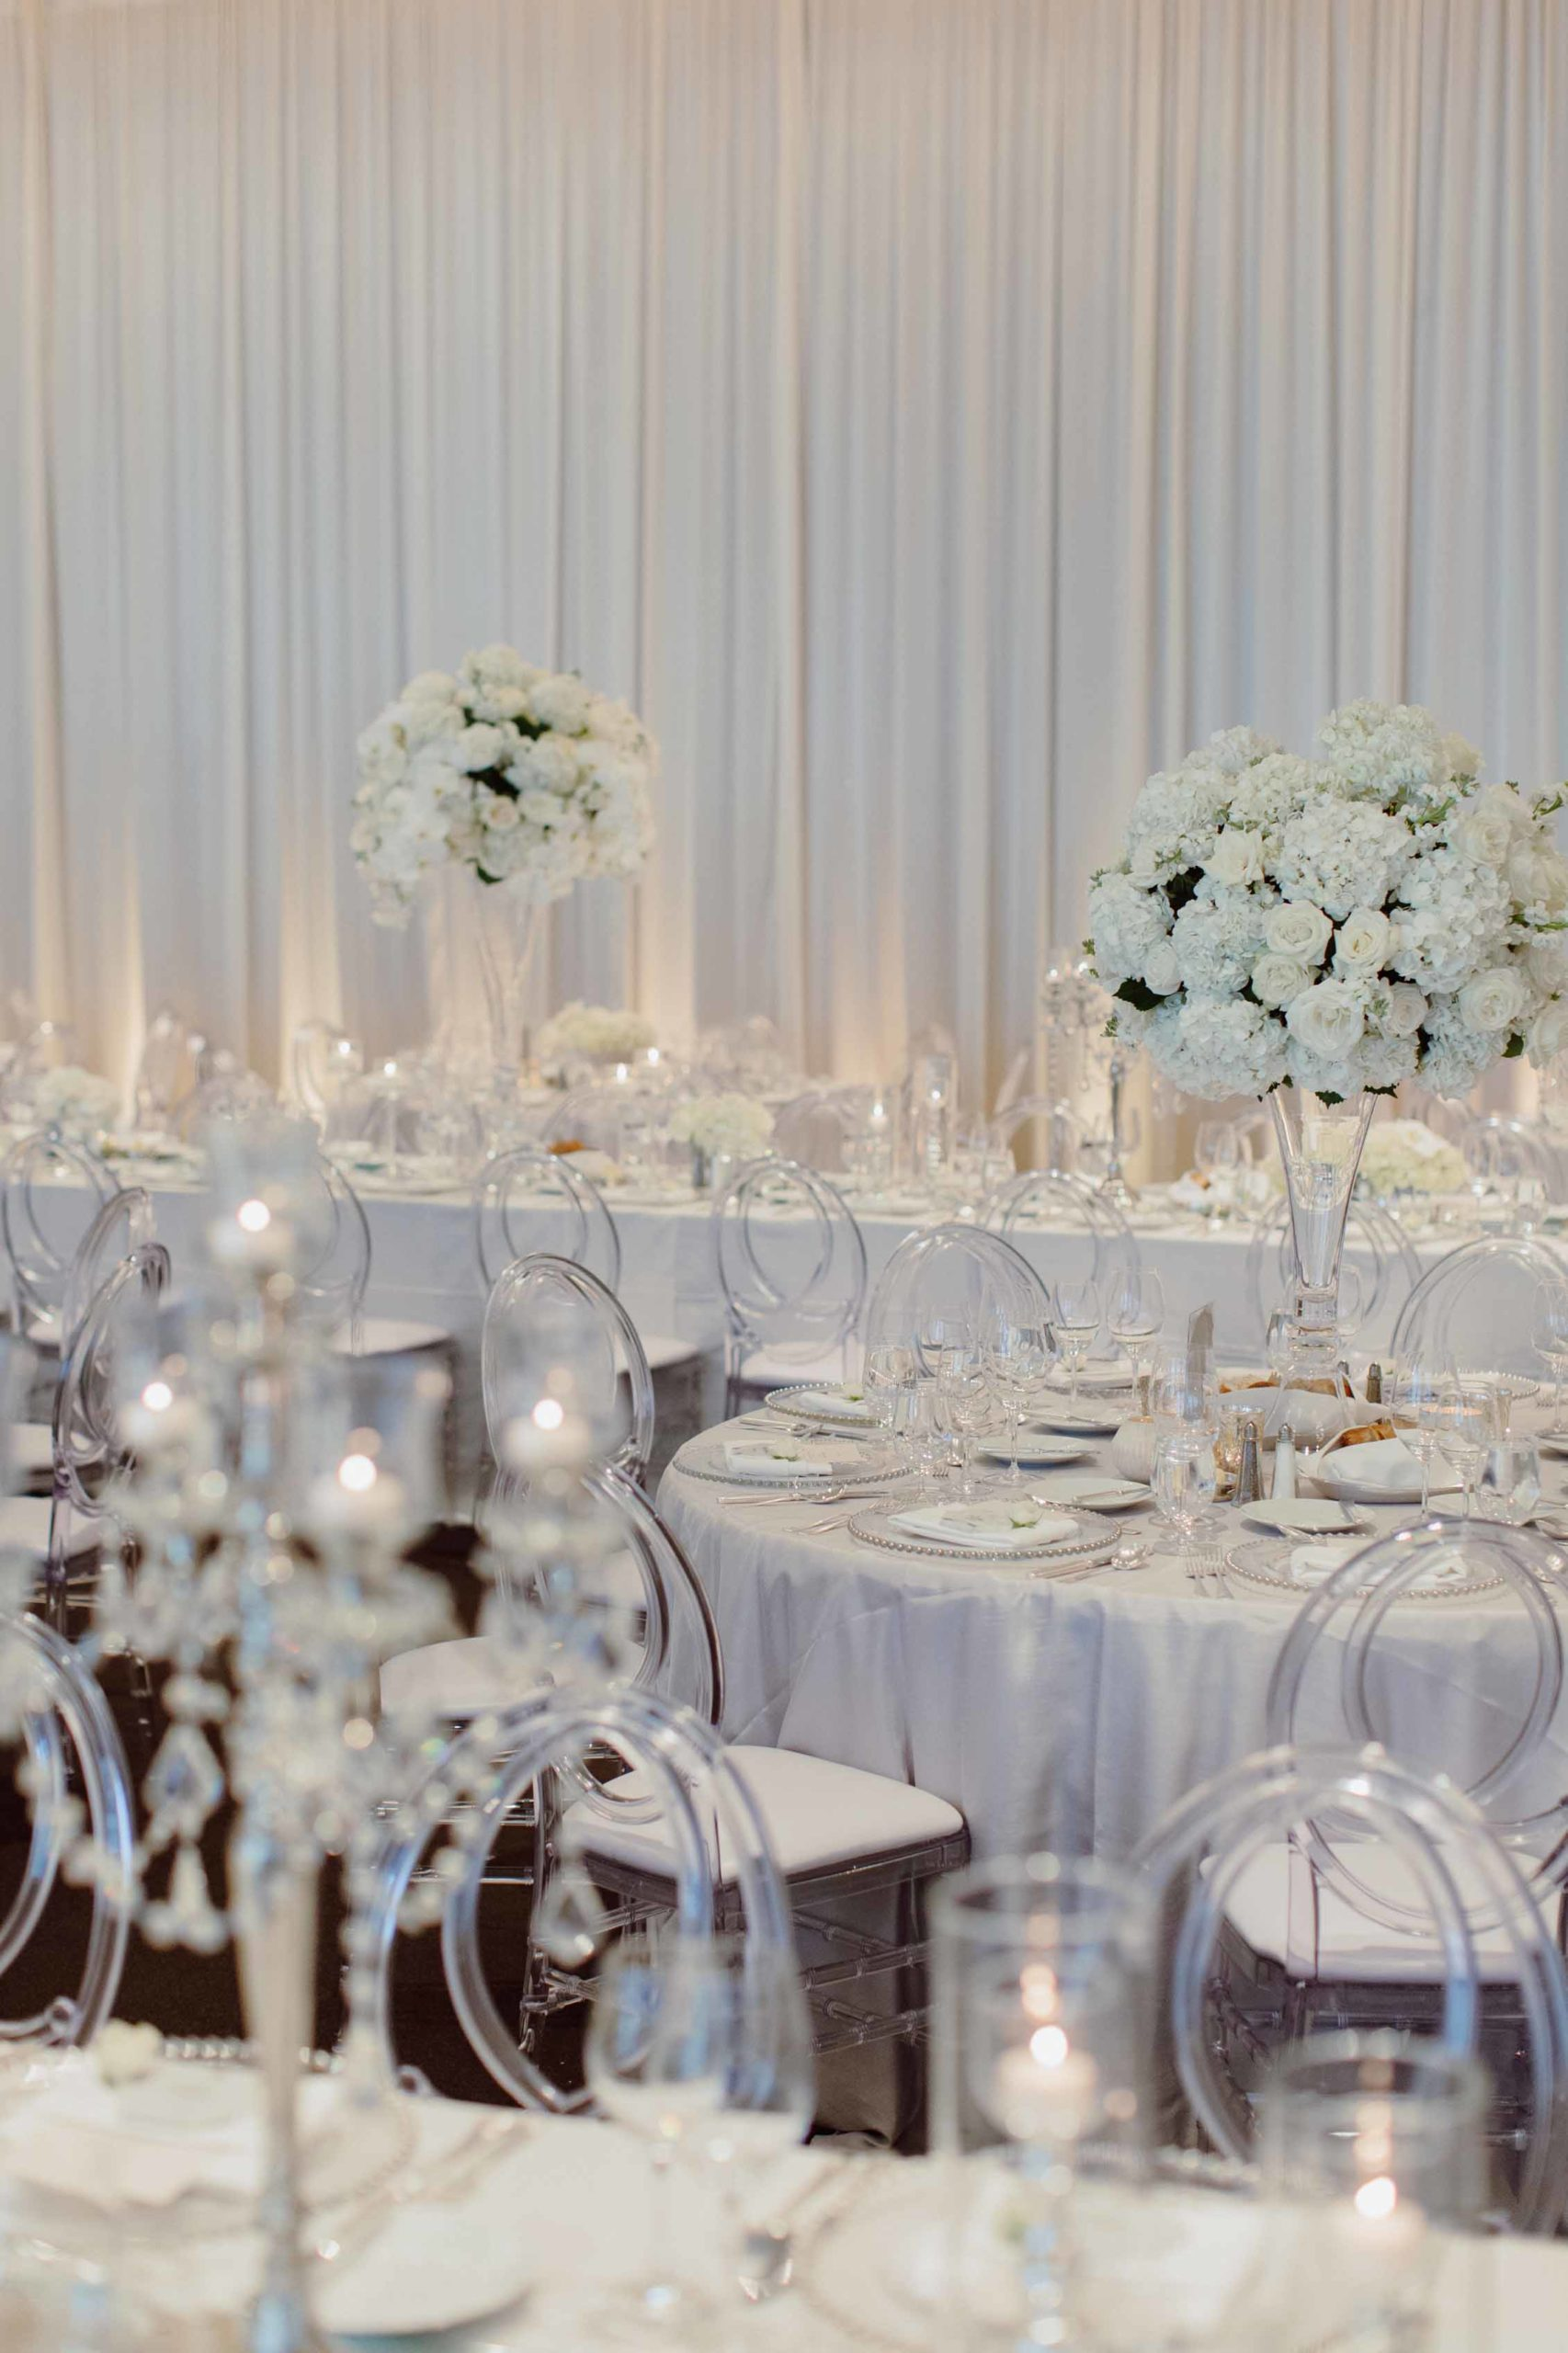 all white wedding reception at the Four Seasons Seattle with draped ballroom and tall centrerpieces with phalenopsis orchids